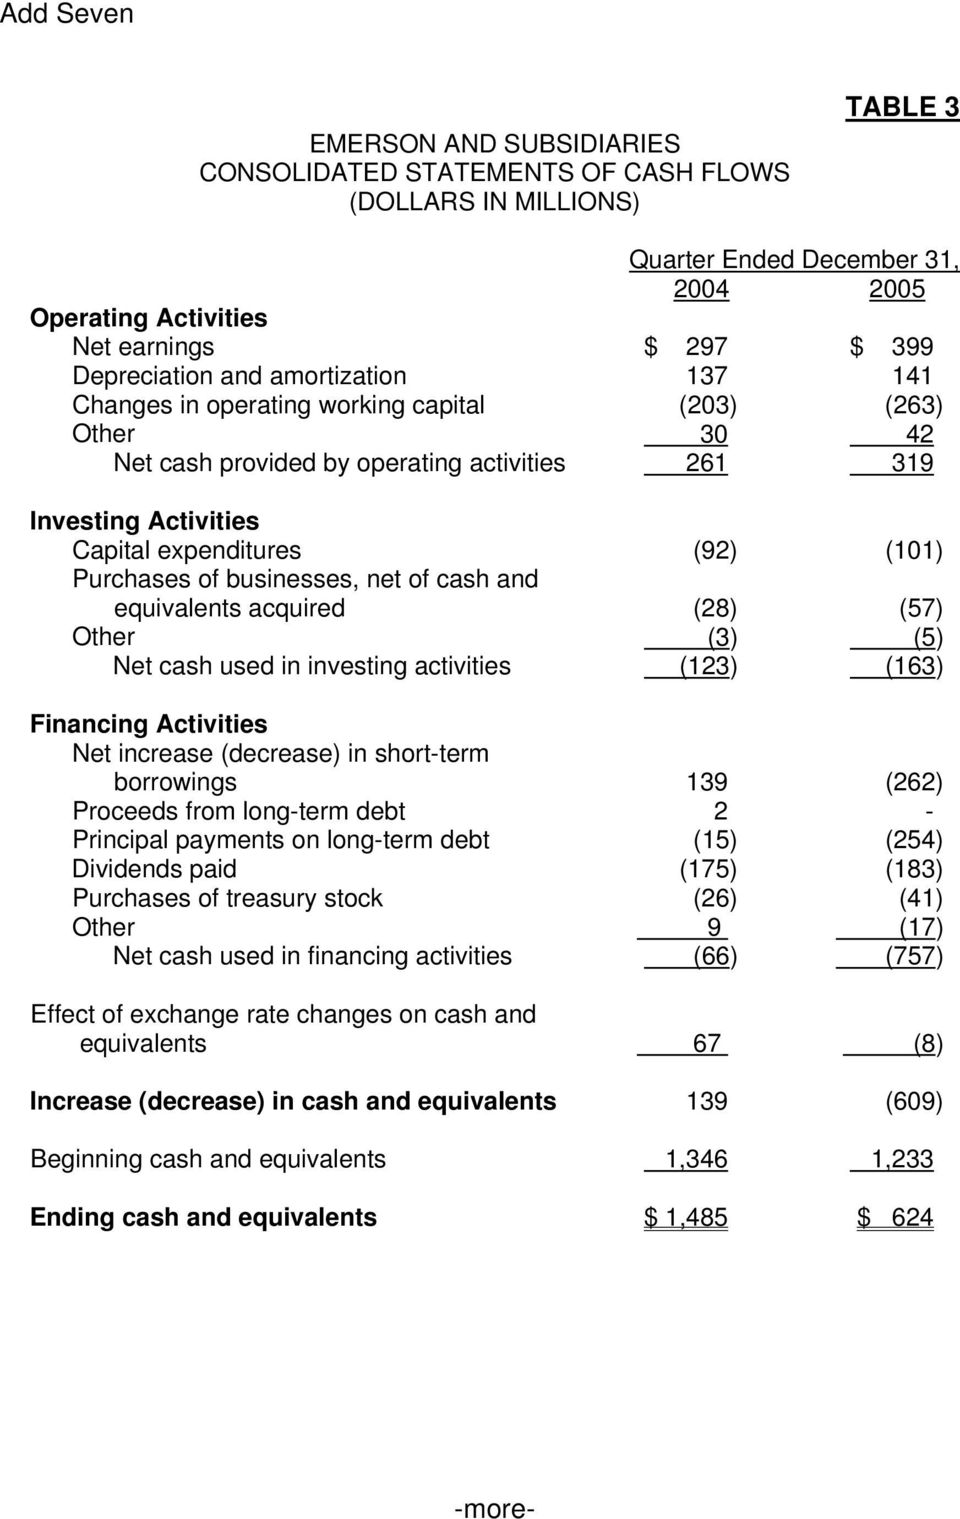 equivalents acquired (28) (57) Other (3) (5) Net cash used in investing activities (123) (163) Financing Activities Net increase (decrease) in short-term borrowings 139 (262) Proceeds from long-term